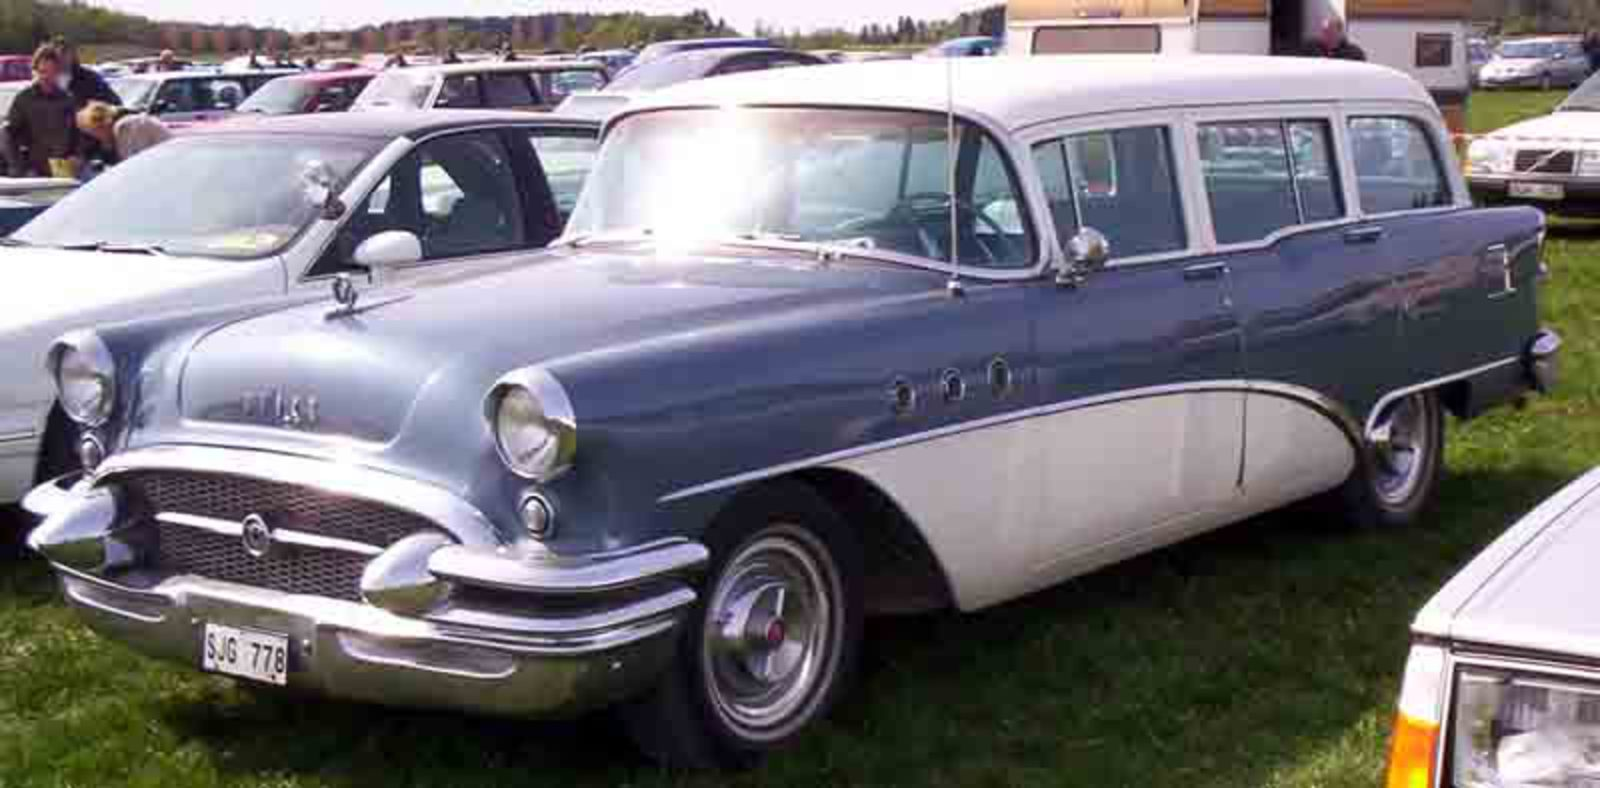 File:Buick Special Station Wagon 1955.jpg. No higher resolution available.